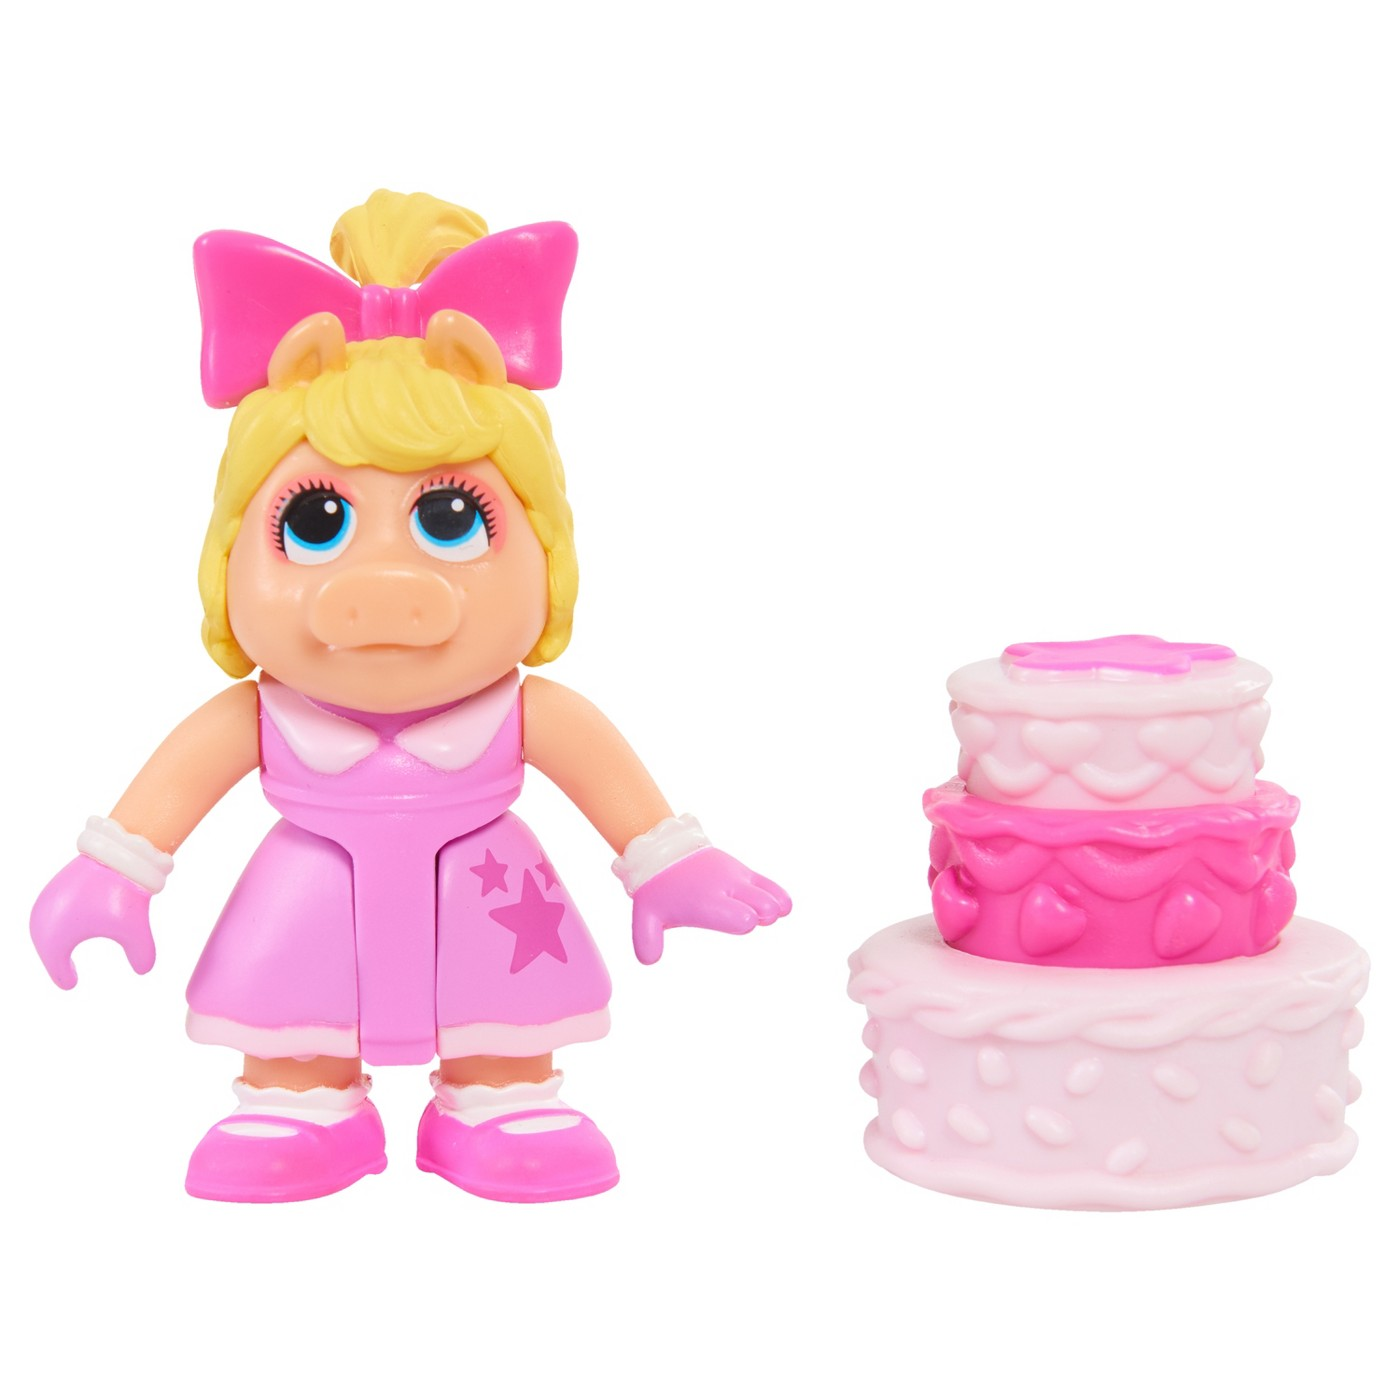 Coming Soon: Muppet Babies Action Figures and More! | Muppet Stuff